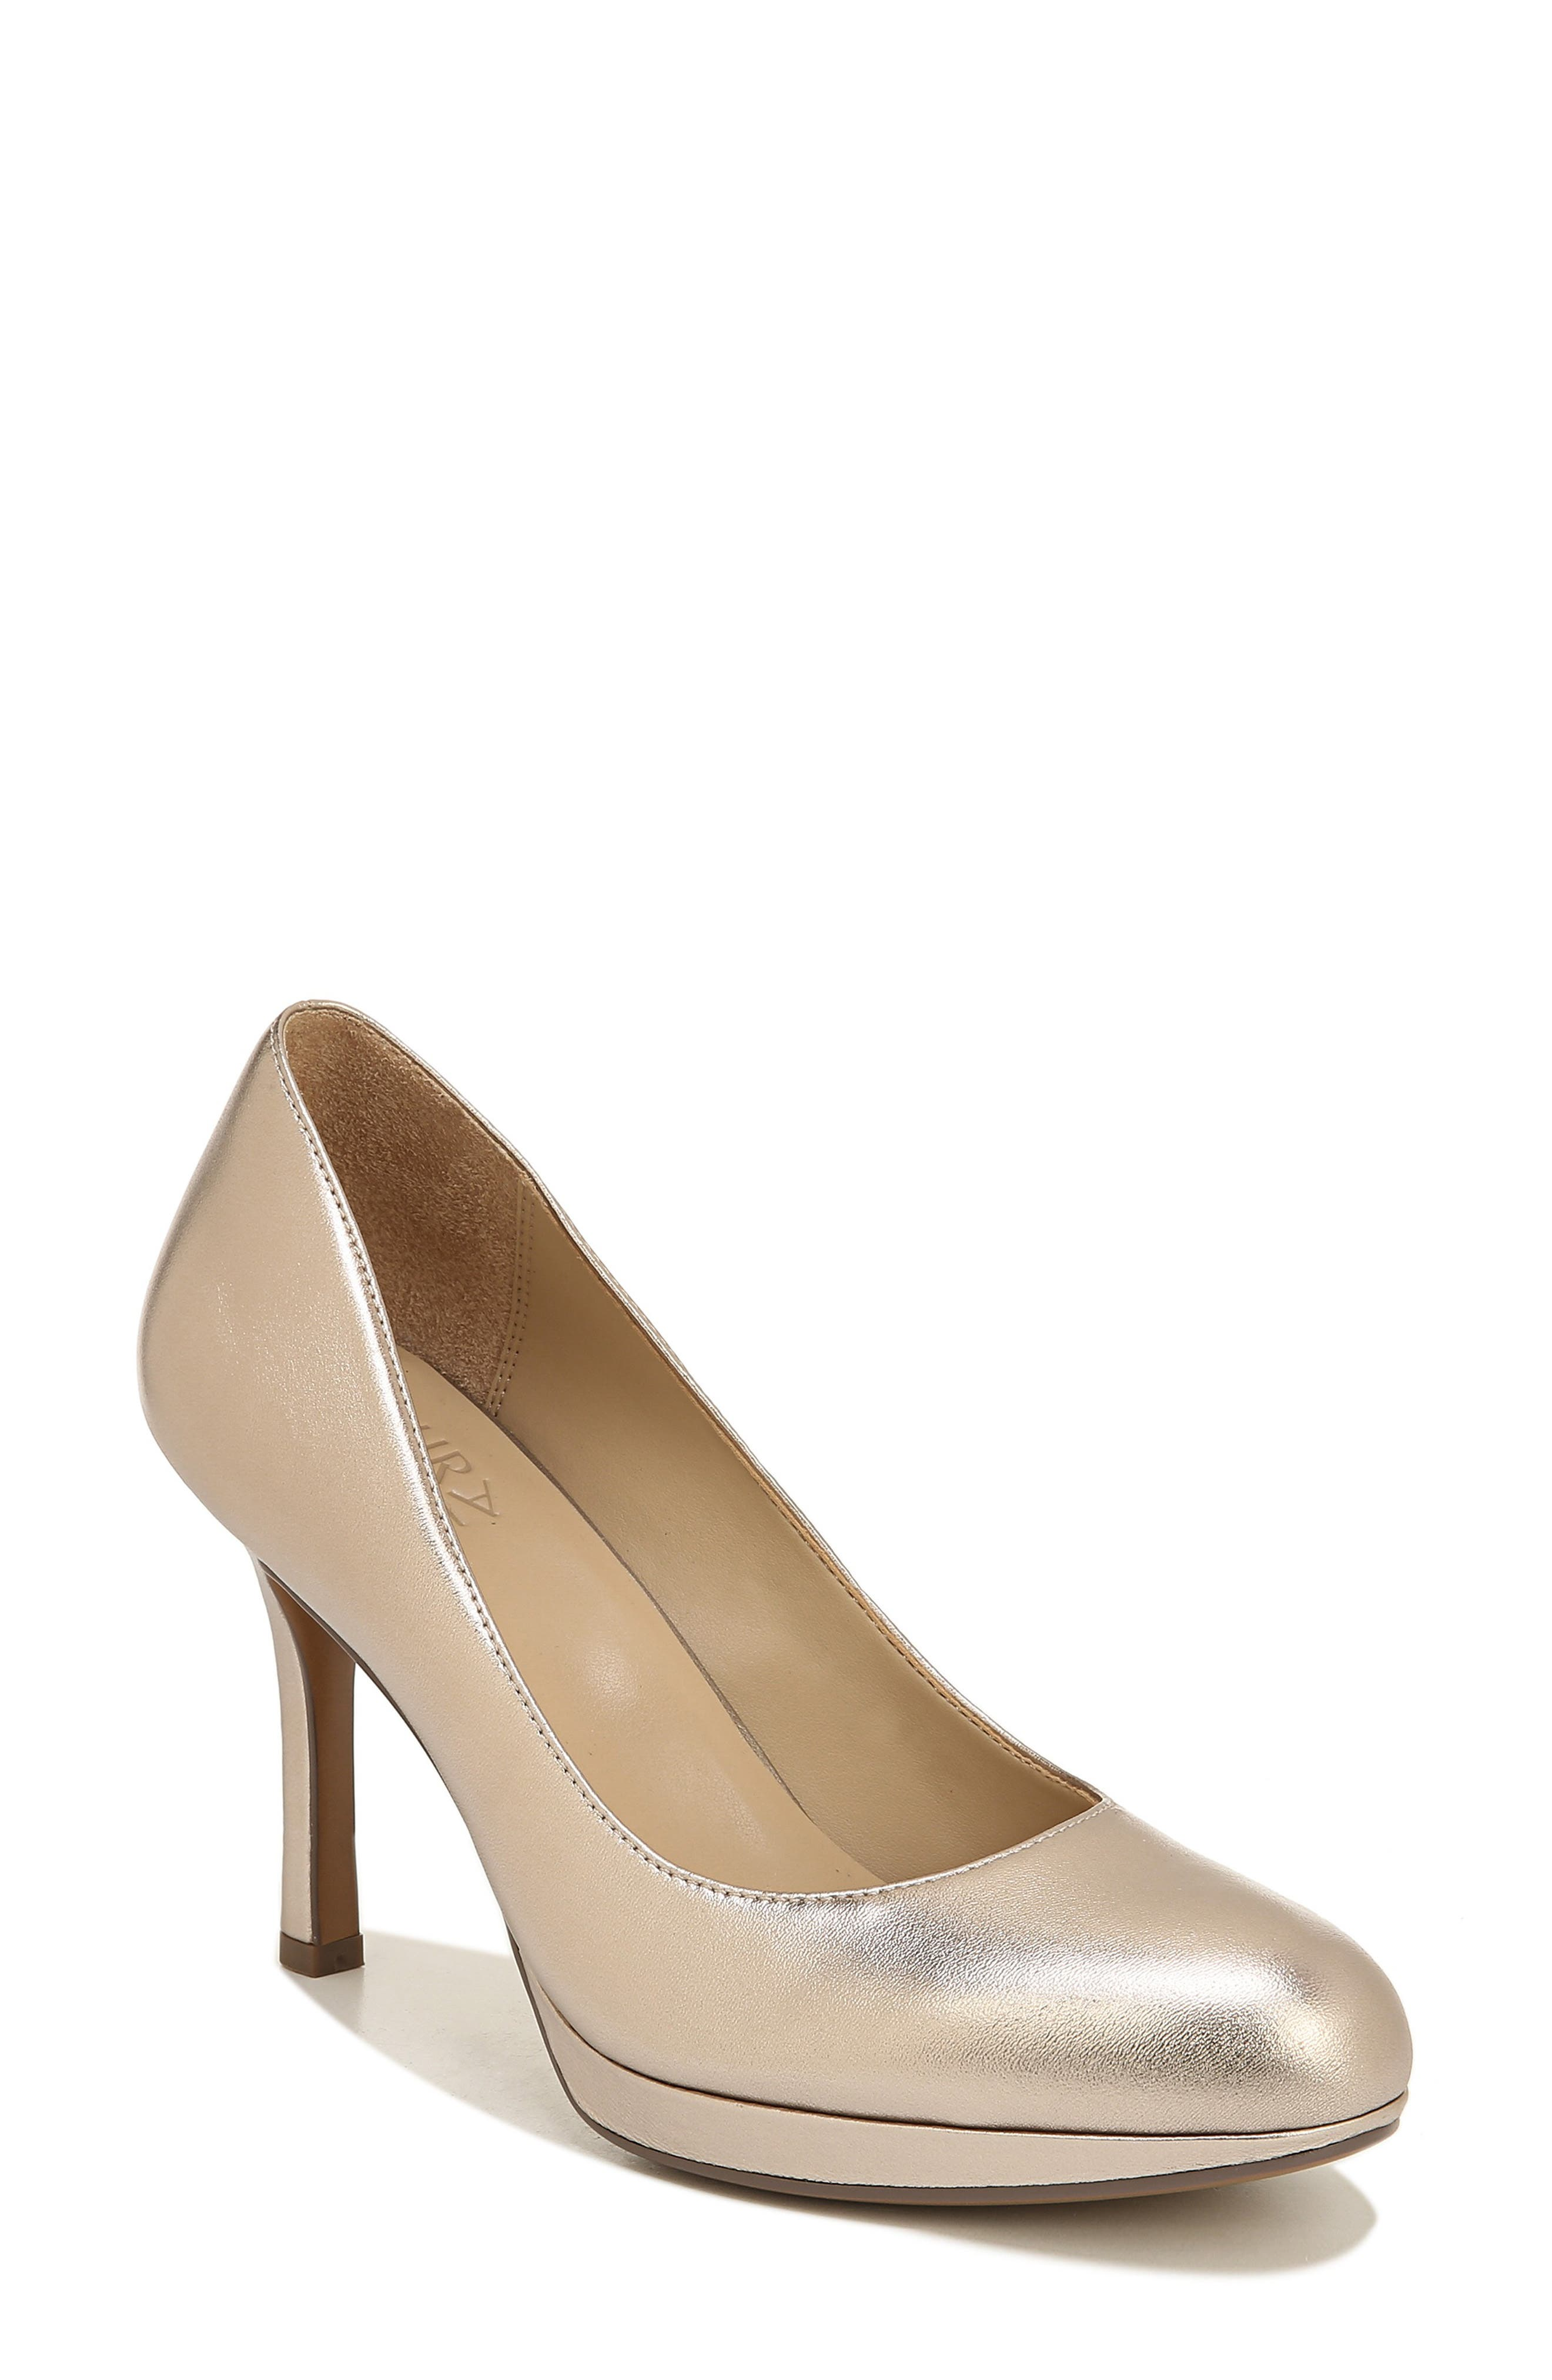 Naturalizer Celina Almond Toe Pump, Metallic